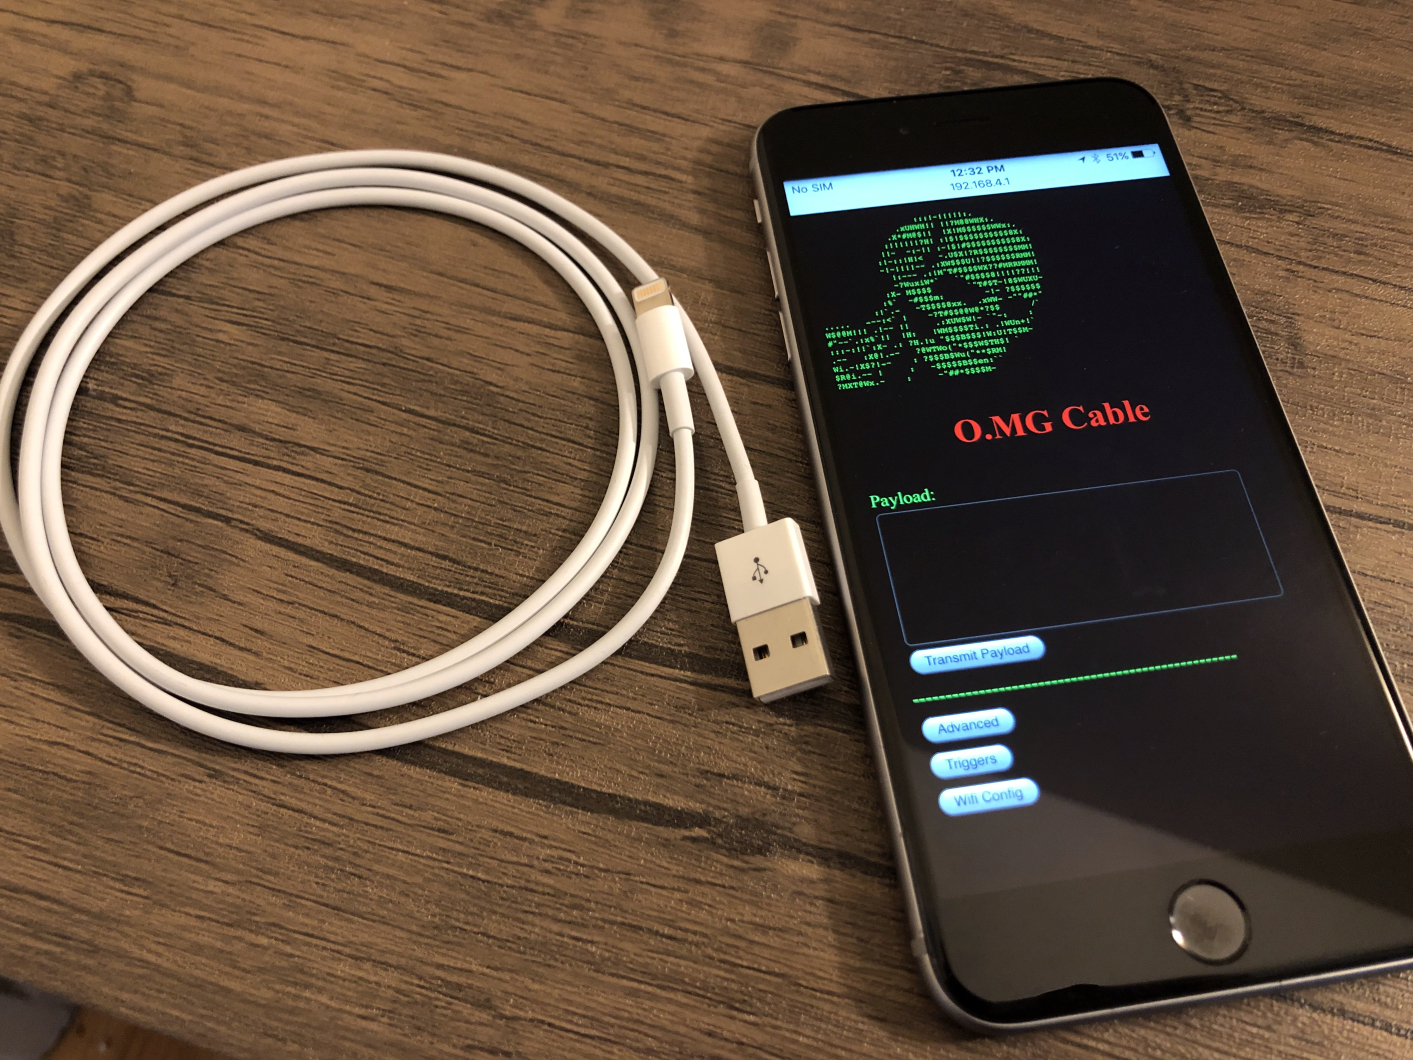 WIFI In Your Malicious USB Cables: O.MG Cable – Thomas J. Ackermann